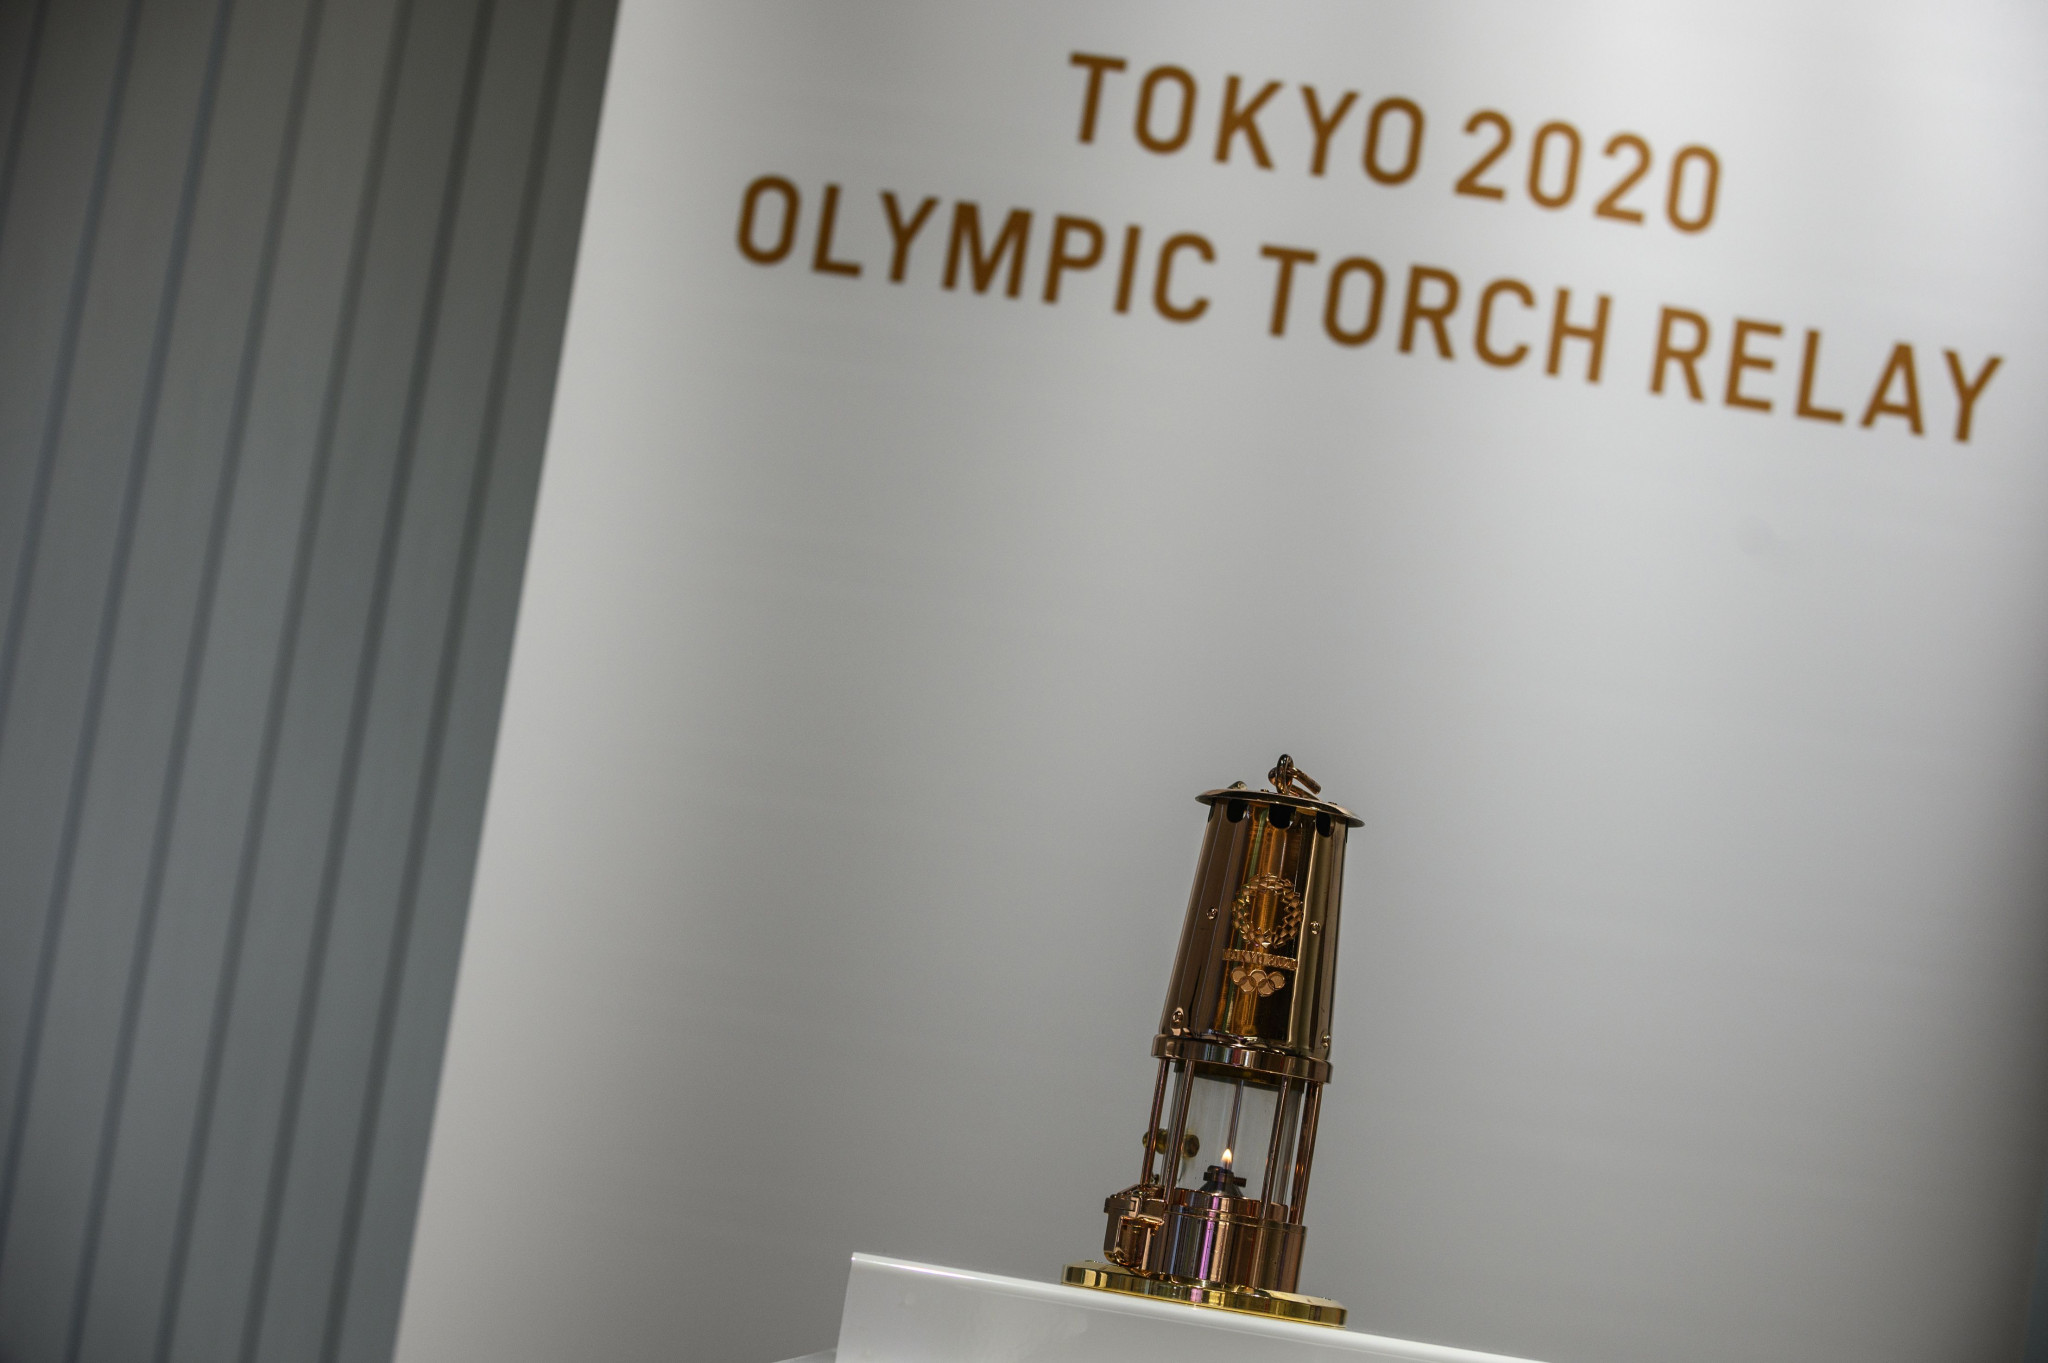 Social distancing and online streaming among plans for postponed Tokyo 2020 Torch Relay with 100 days to go